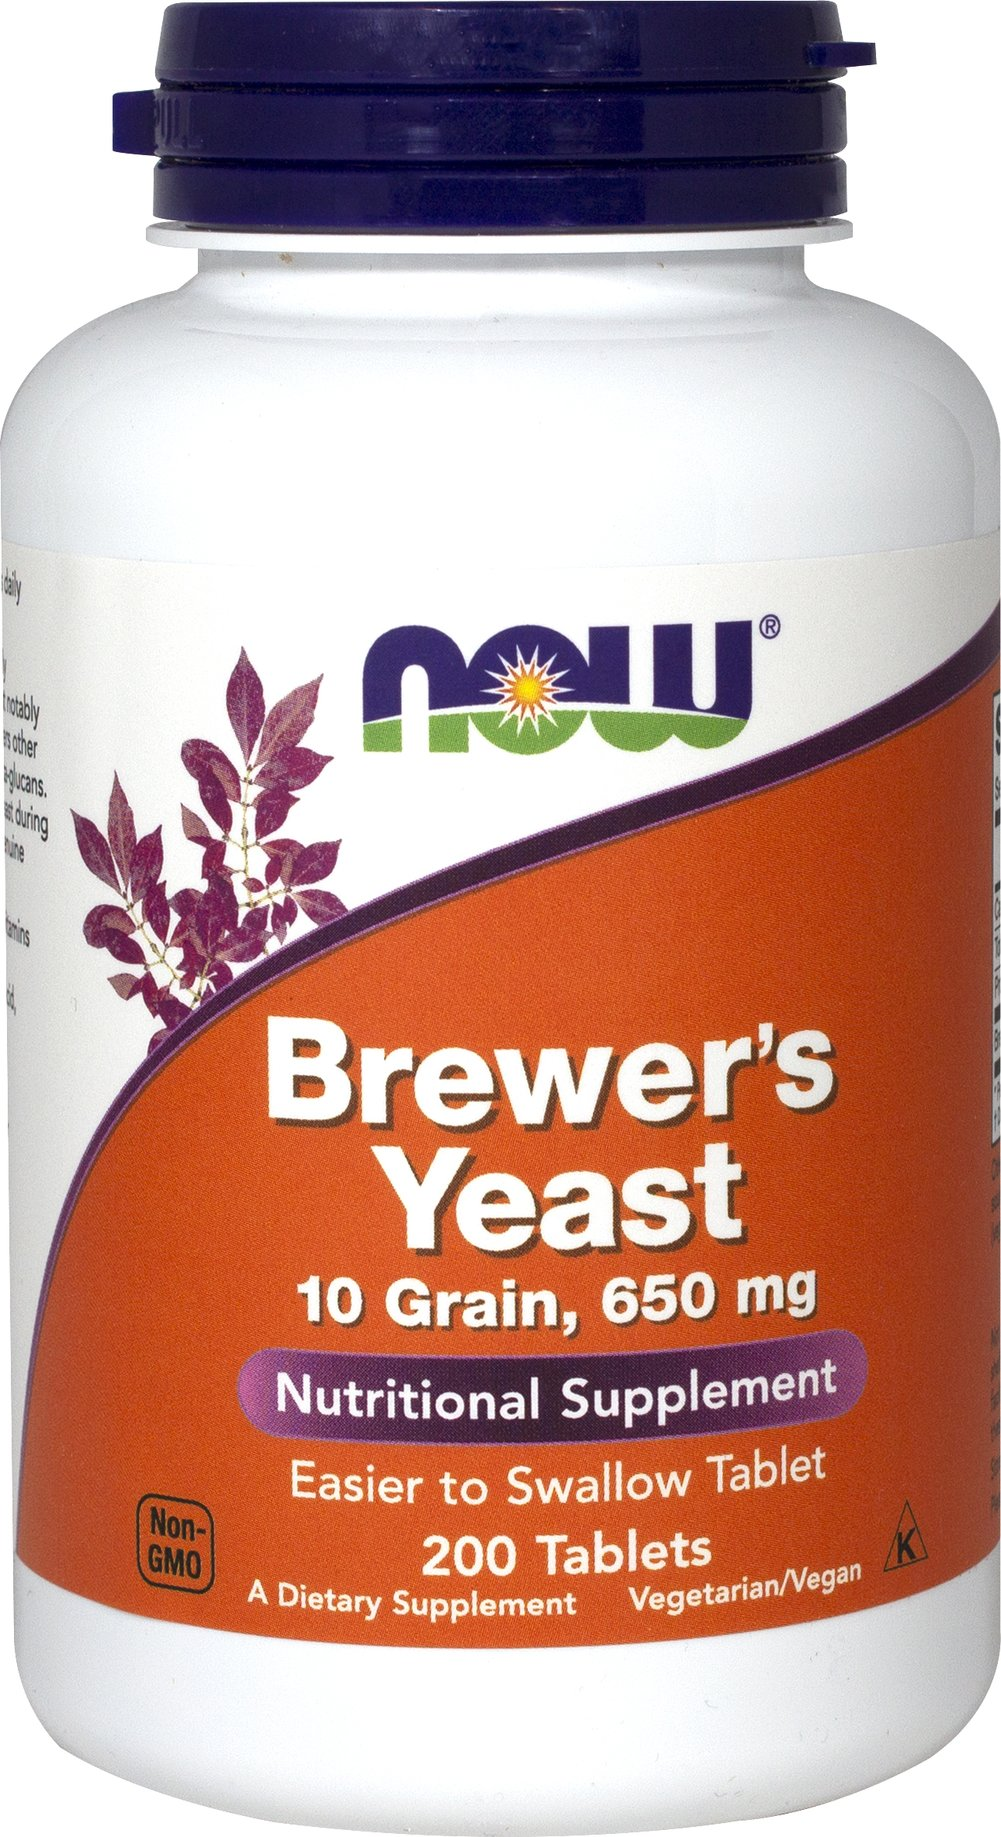 Brewer's Yeast Thumbnail Alternate Bottle View